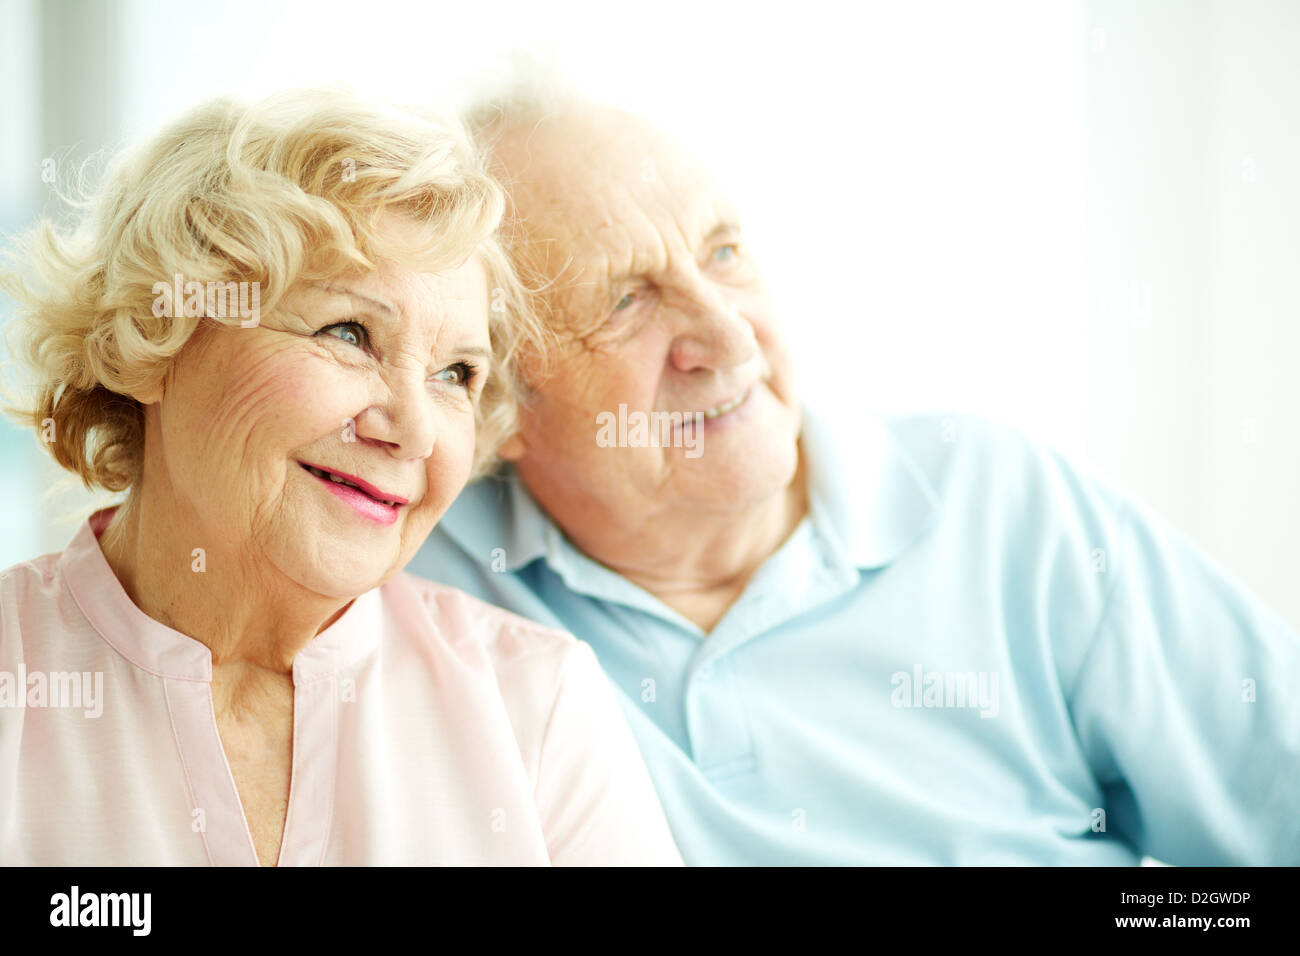 Close-up portrait of a charming elderly woman with her husband on background - Stock Image